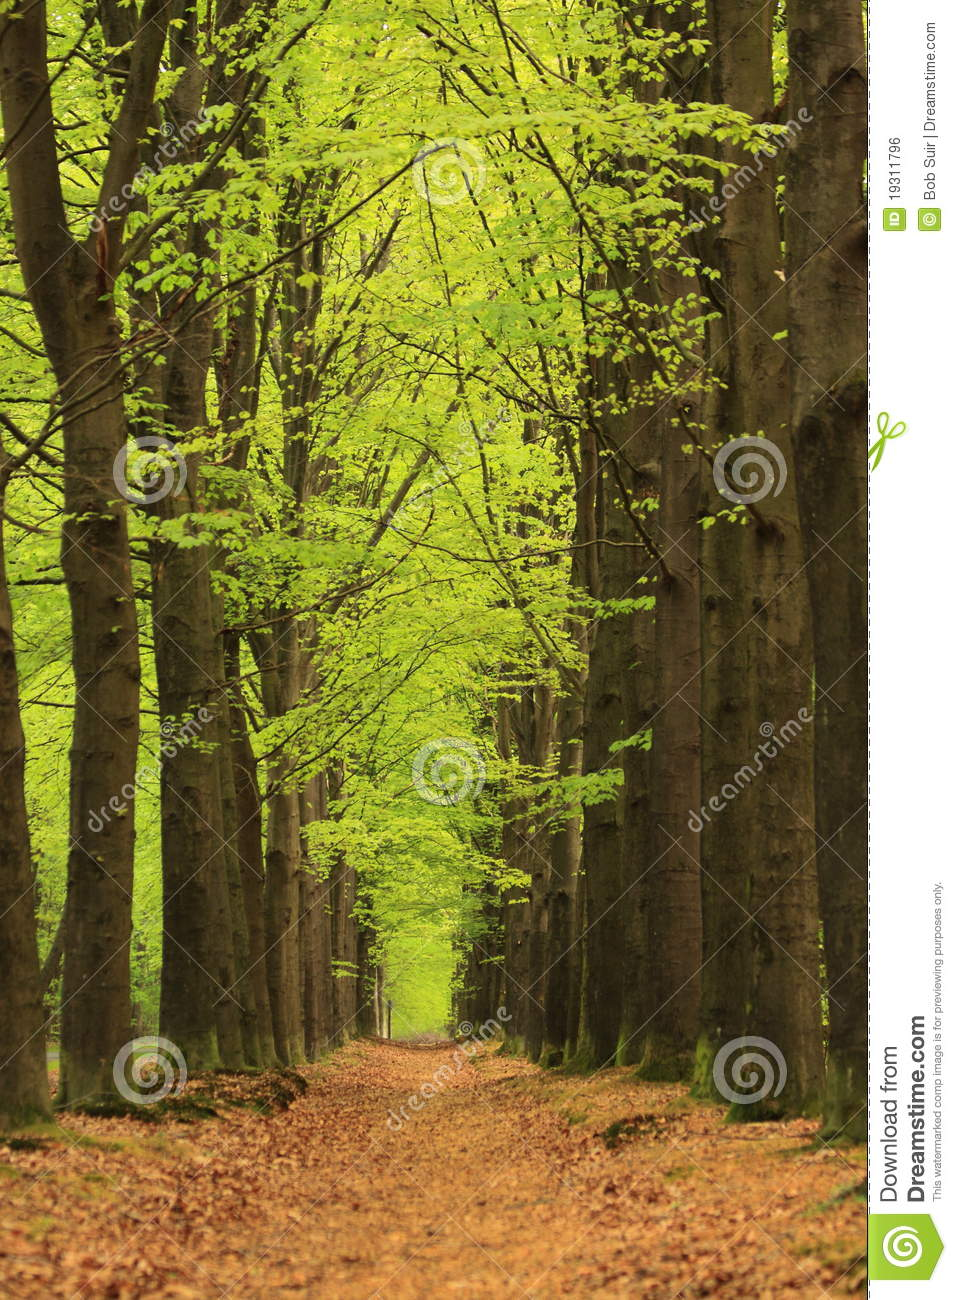 Path with trees with green spring leaves